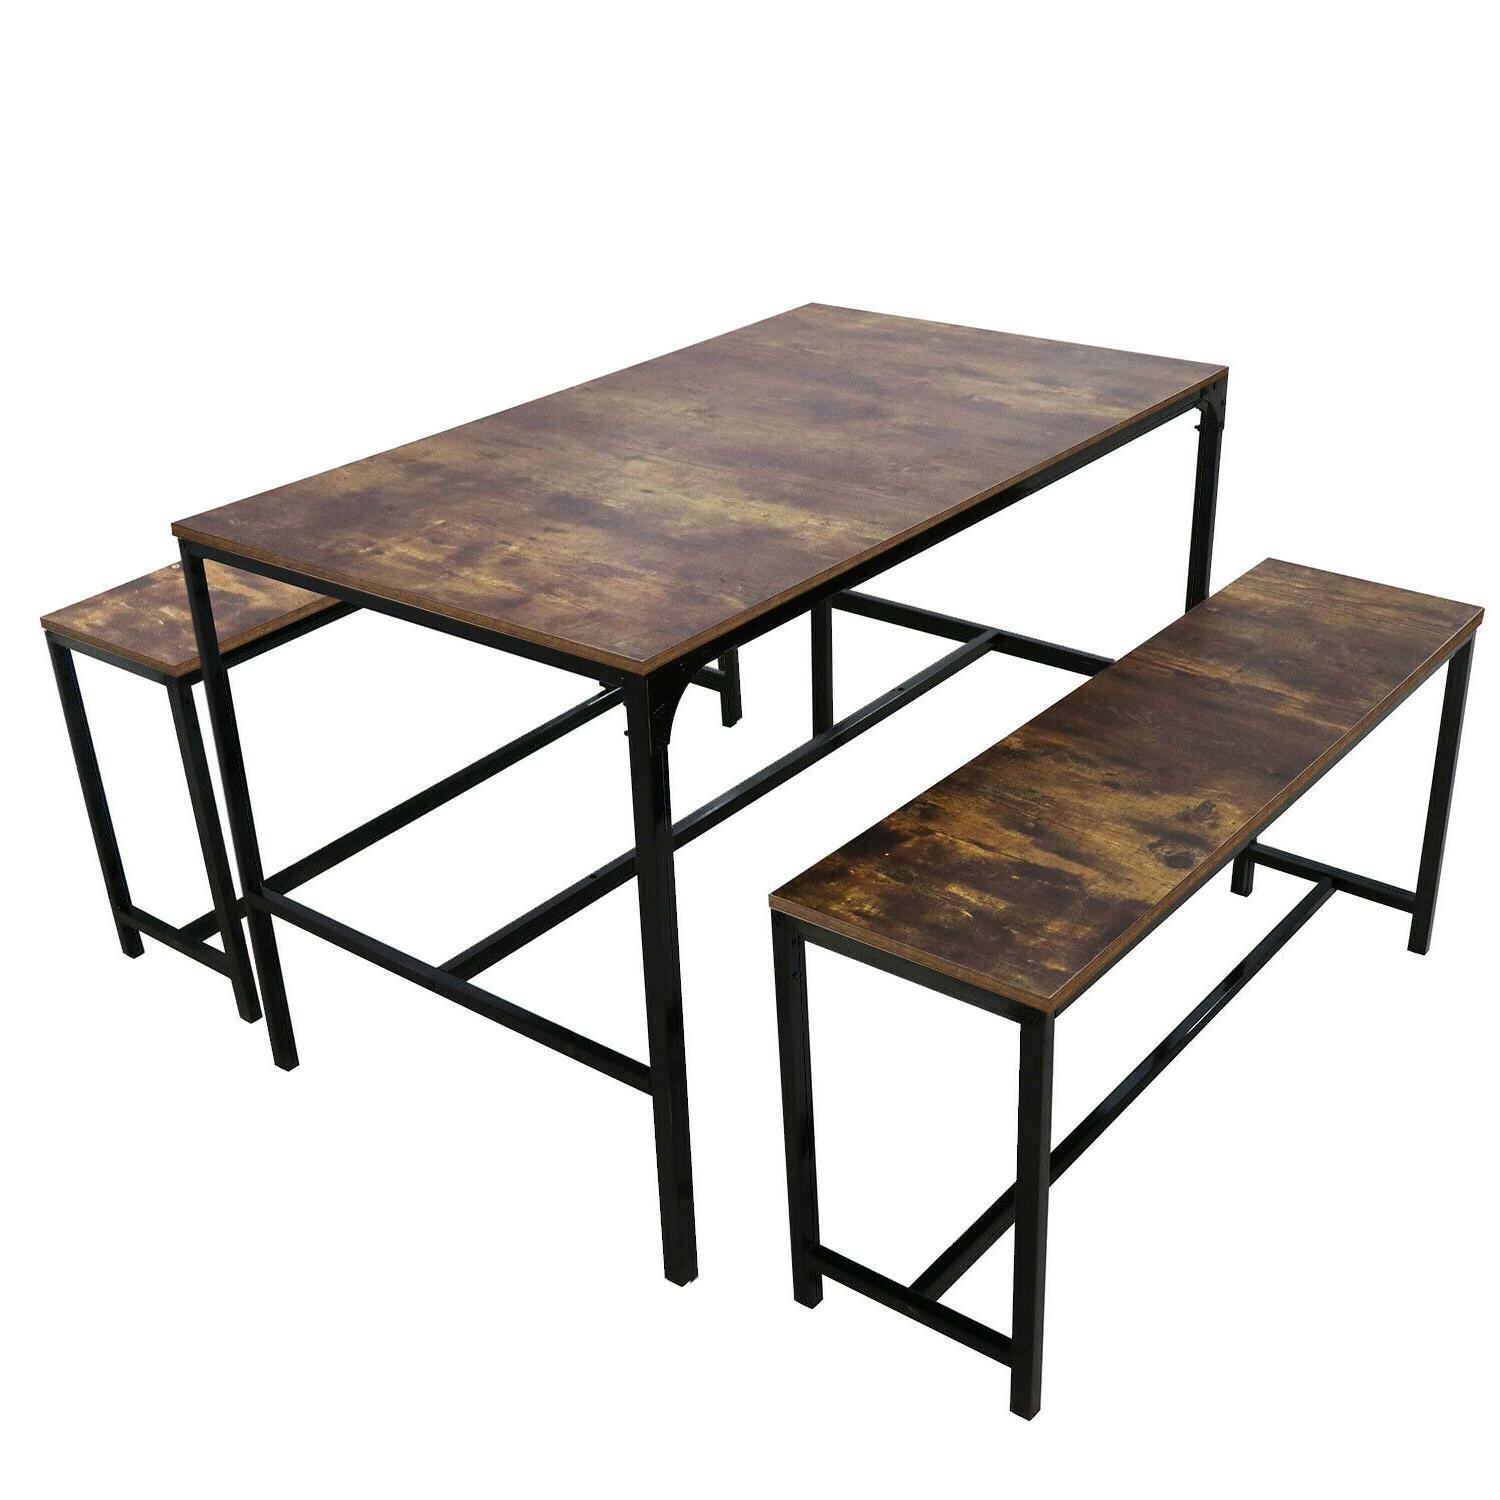 3 piece dining table set w 2